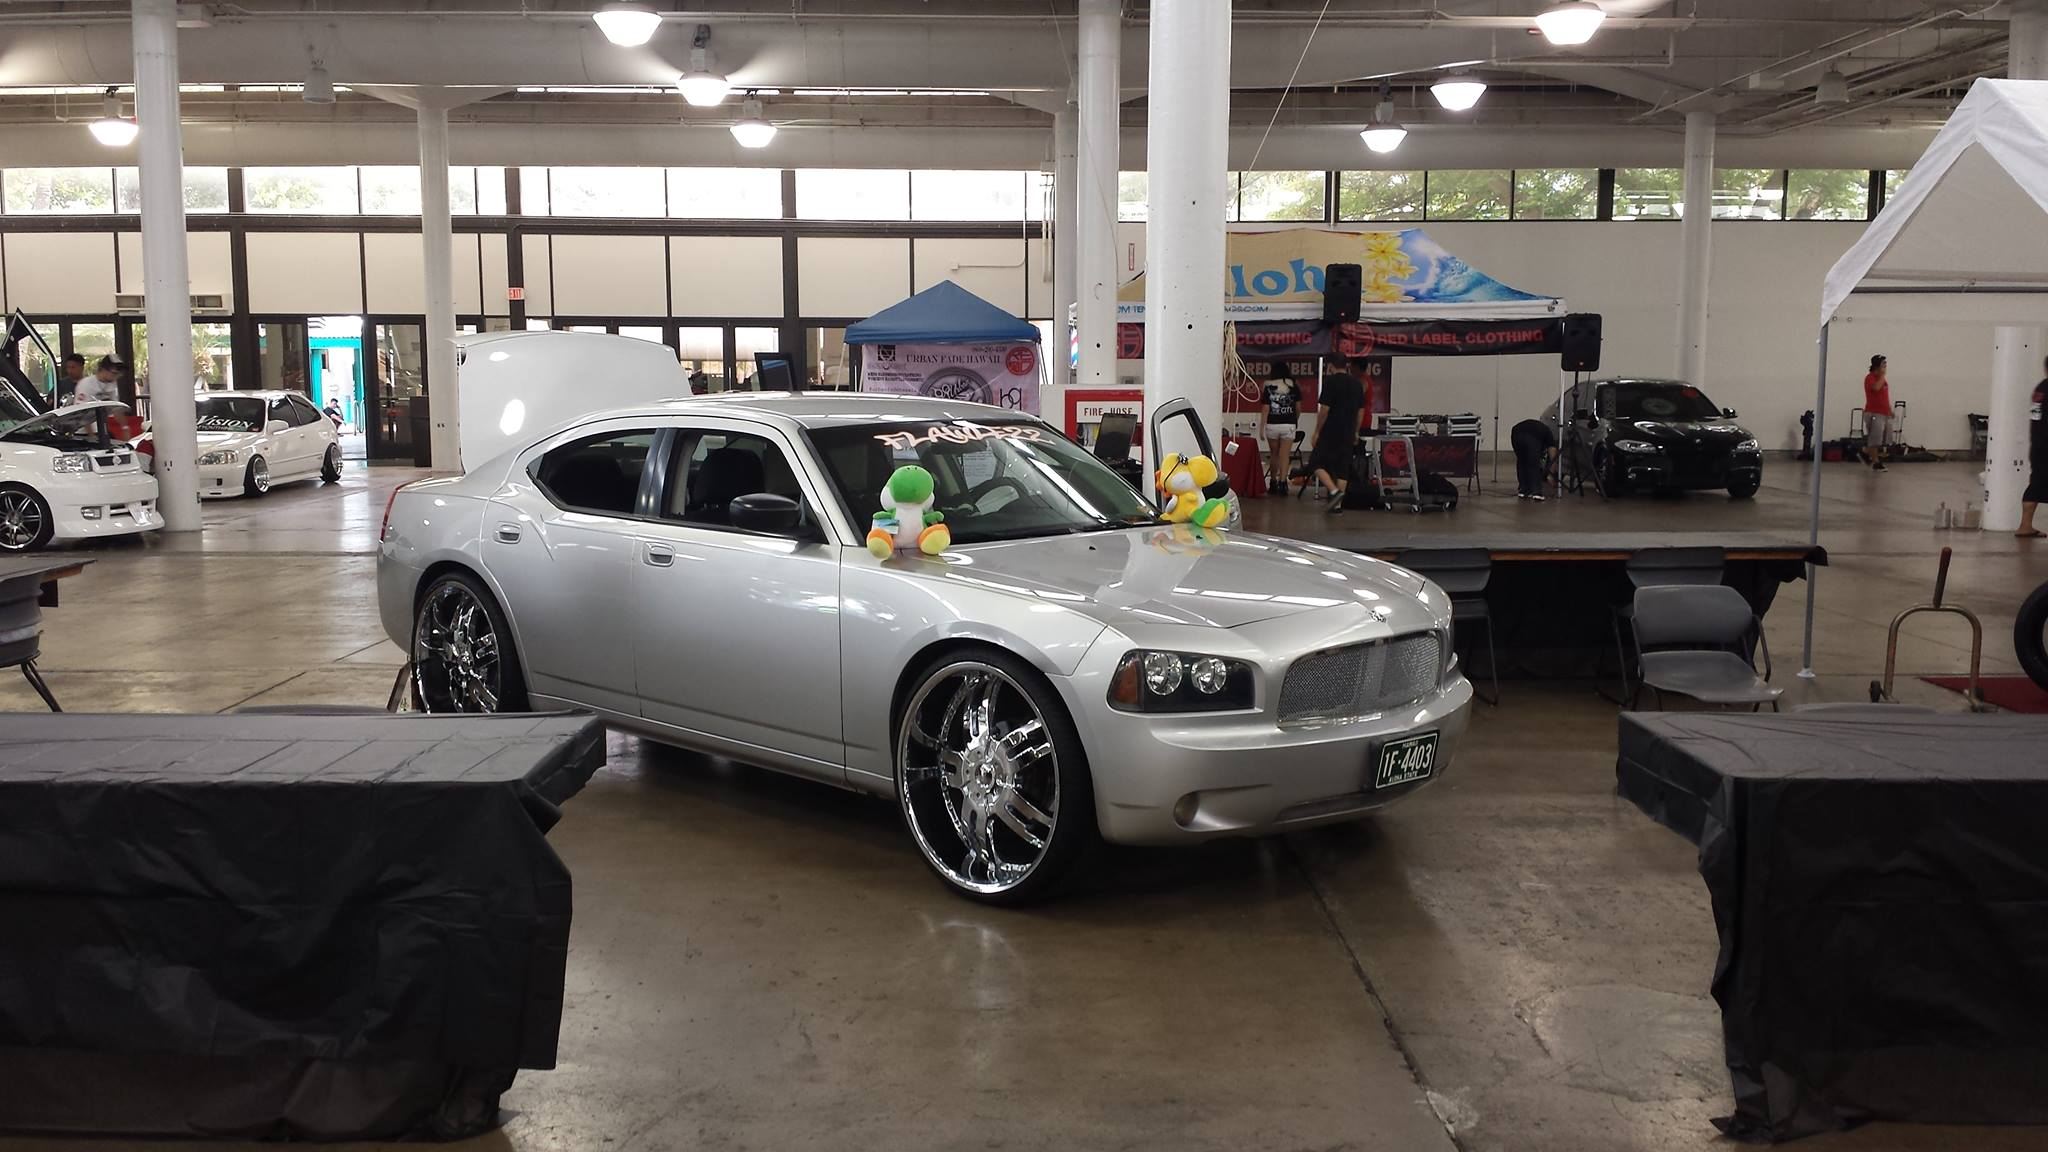 Yoshi8FO3 2009 Dodge Charger 19103686